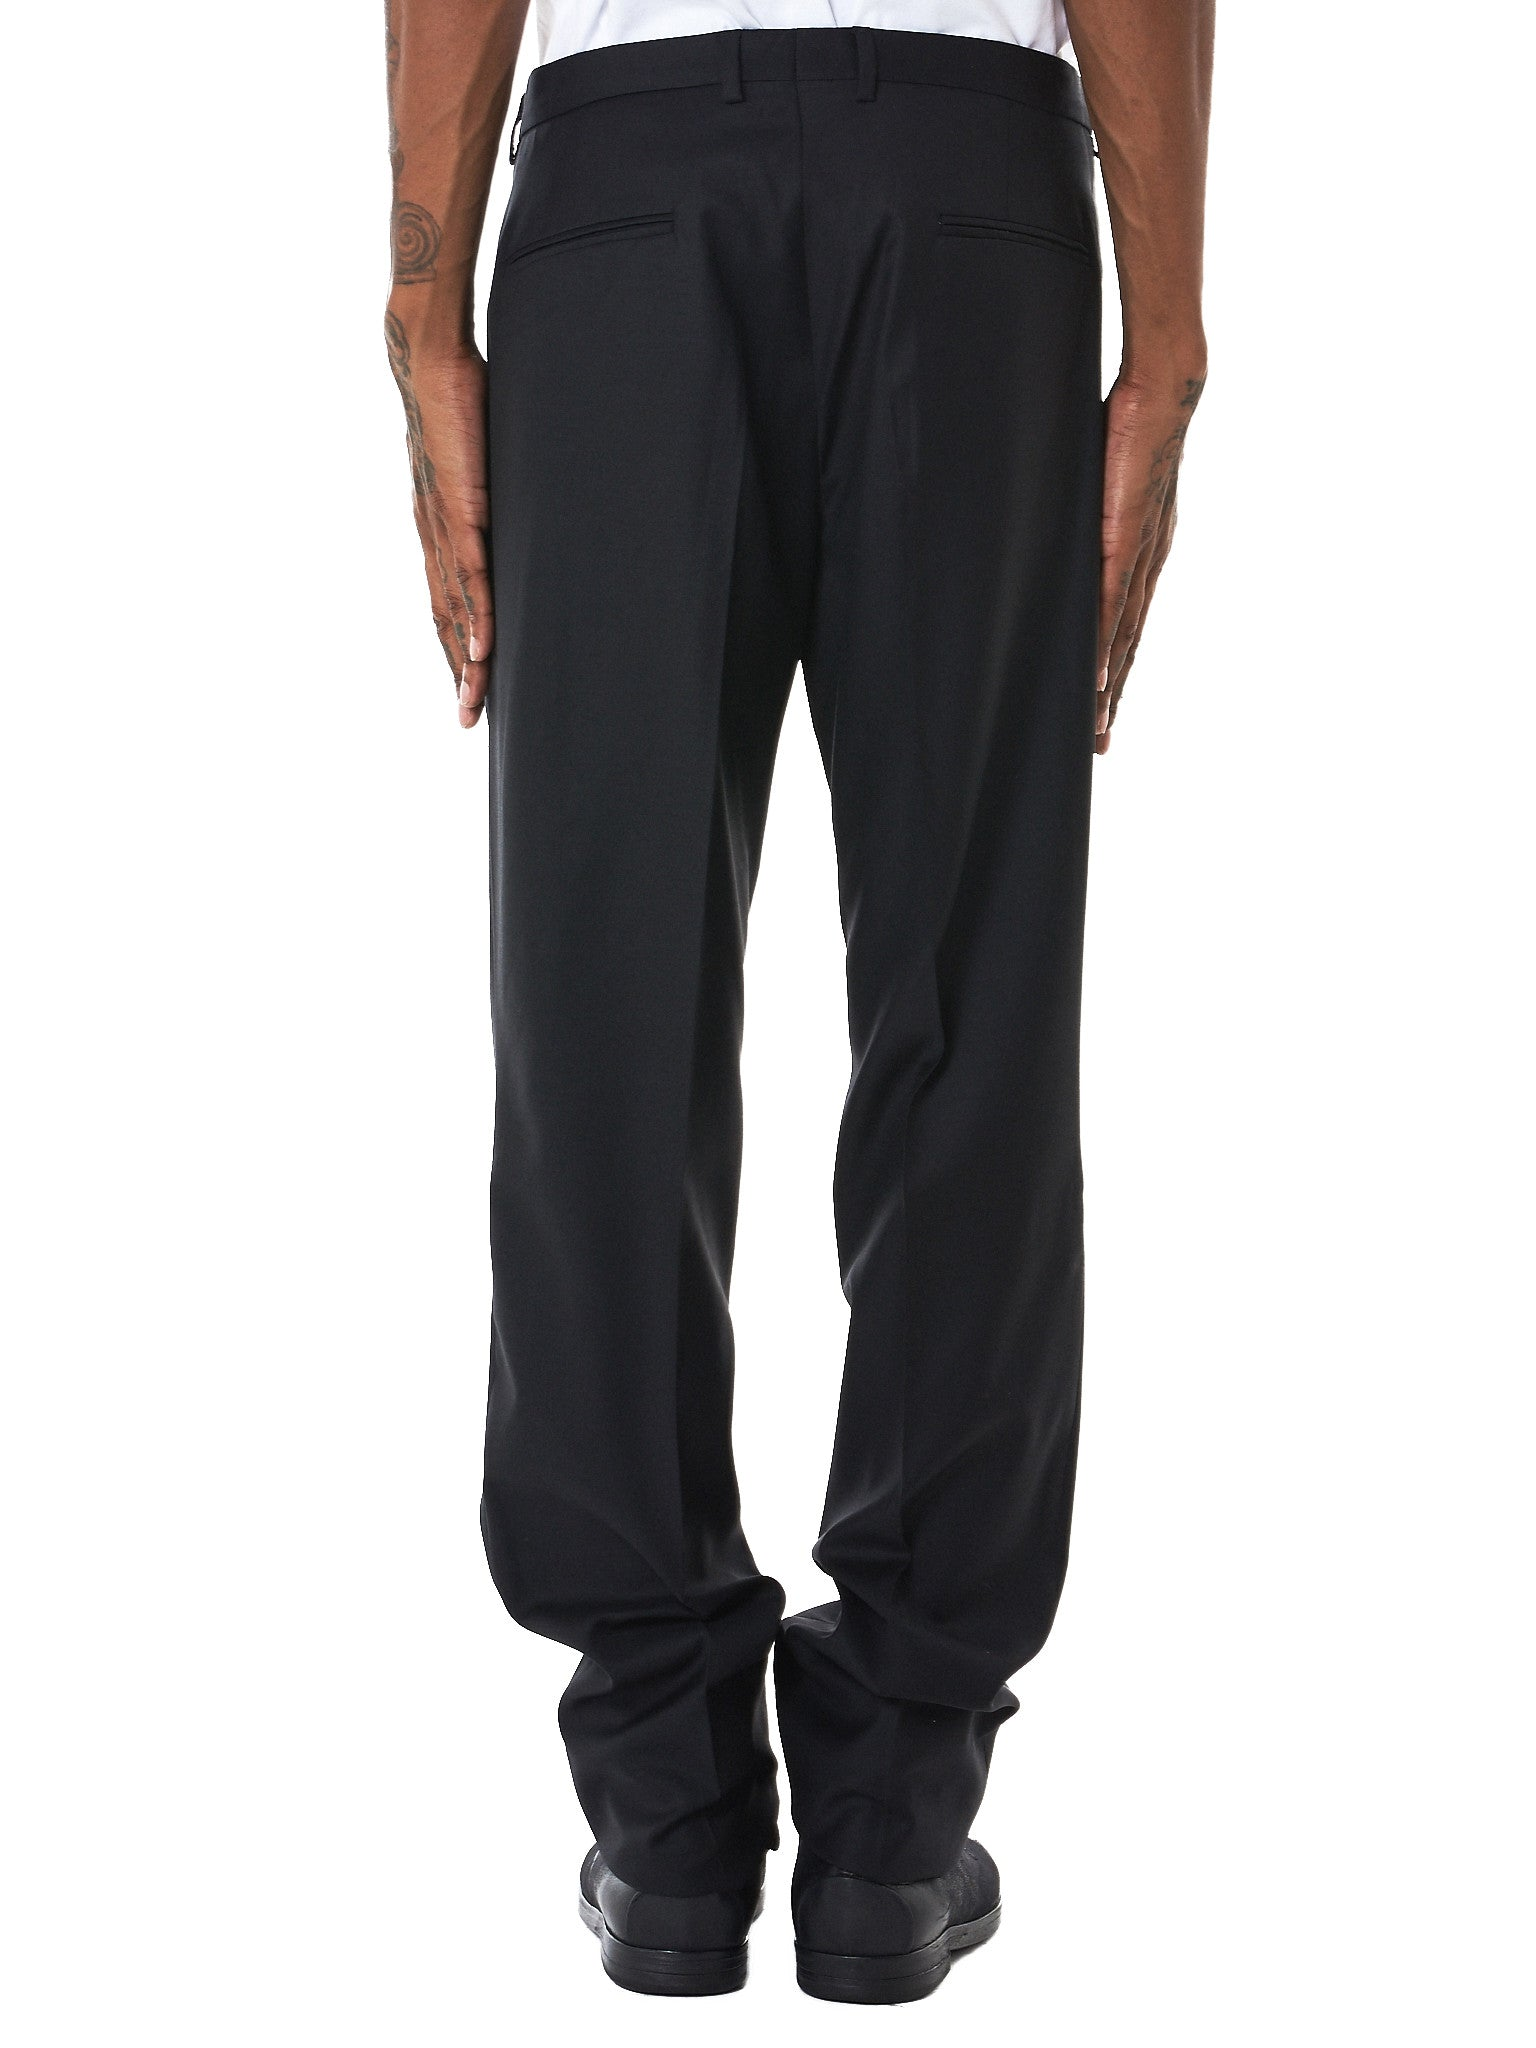 Reversible Suit Trousers (TR01-SOLID-BLACK)